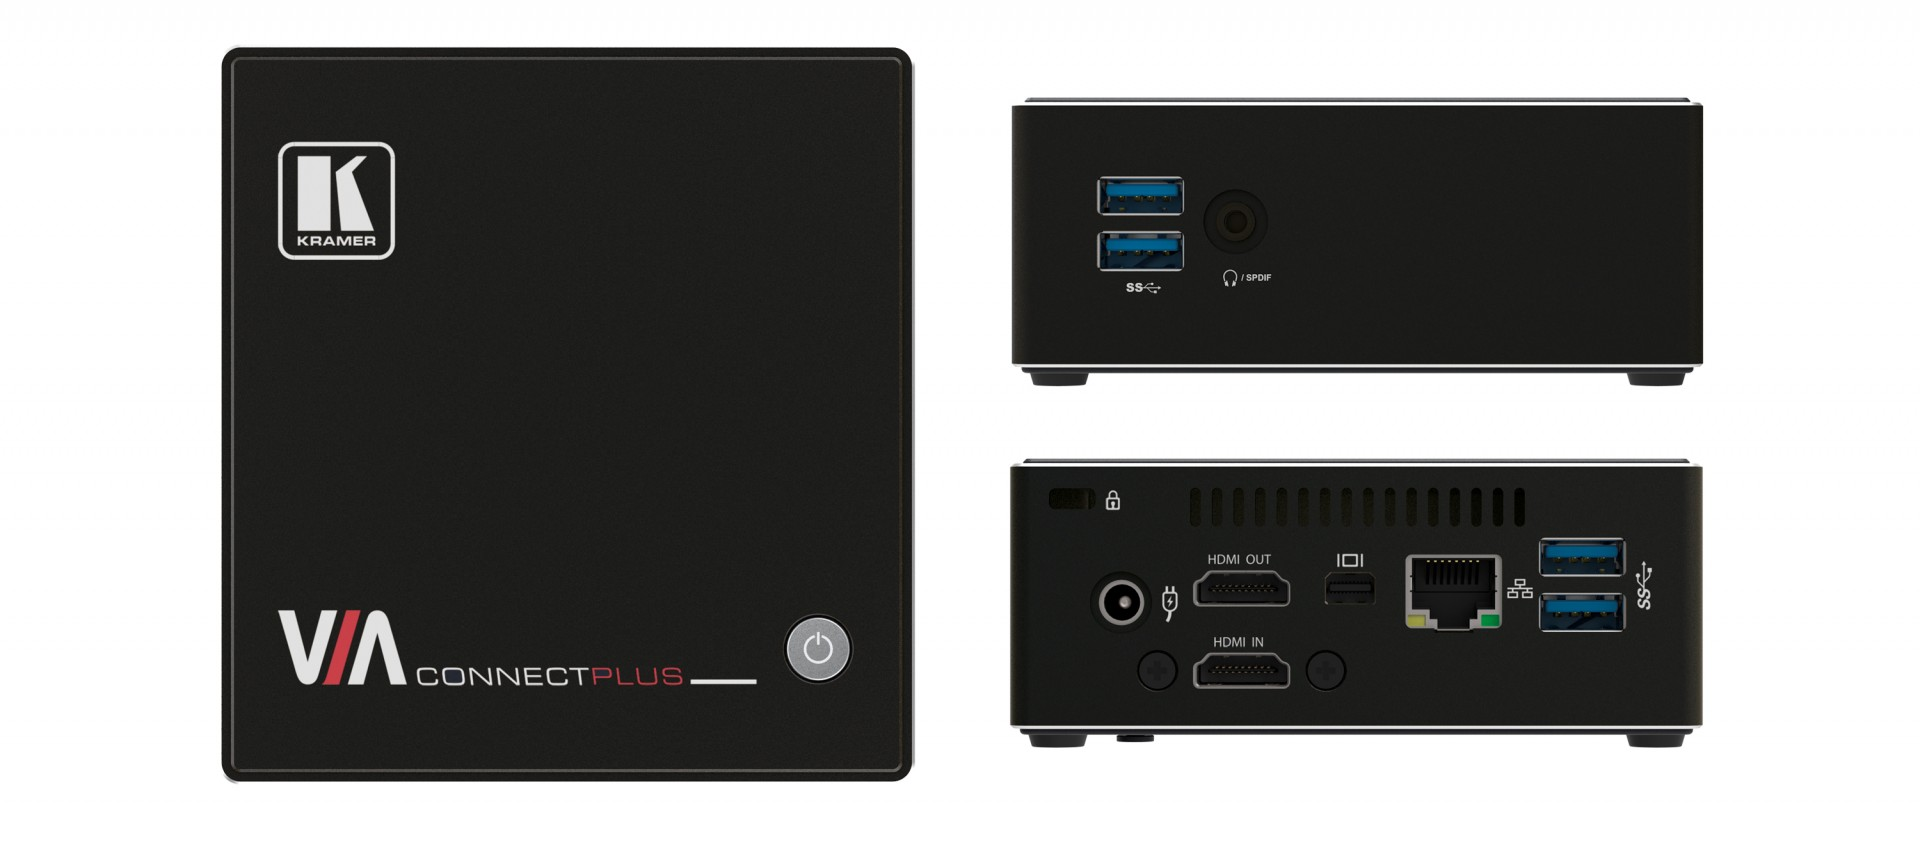 Kramer VIA Connect PLUS Simultaneous Wired and Wireless Presentation and Collaboration Solution